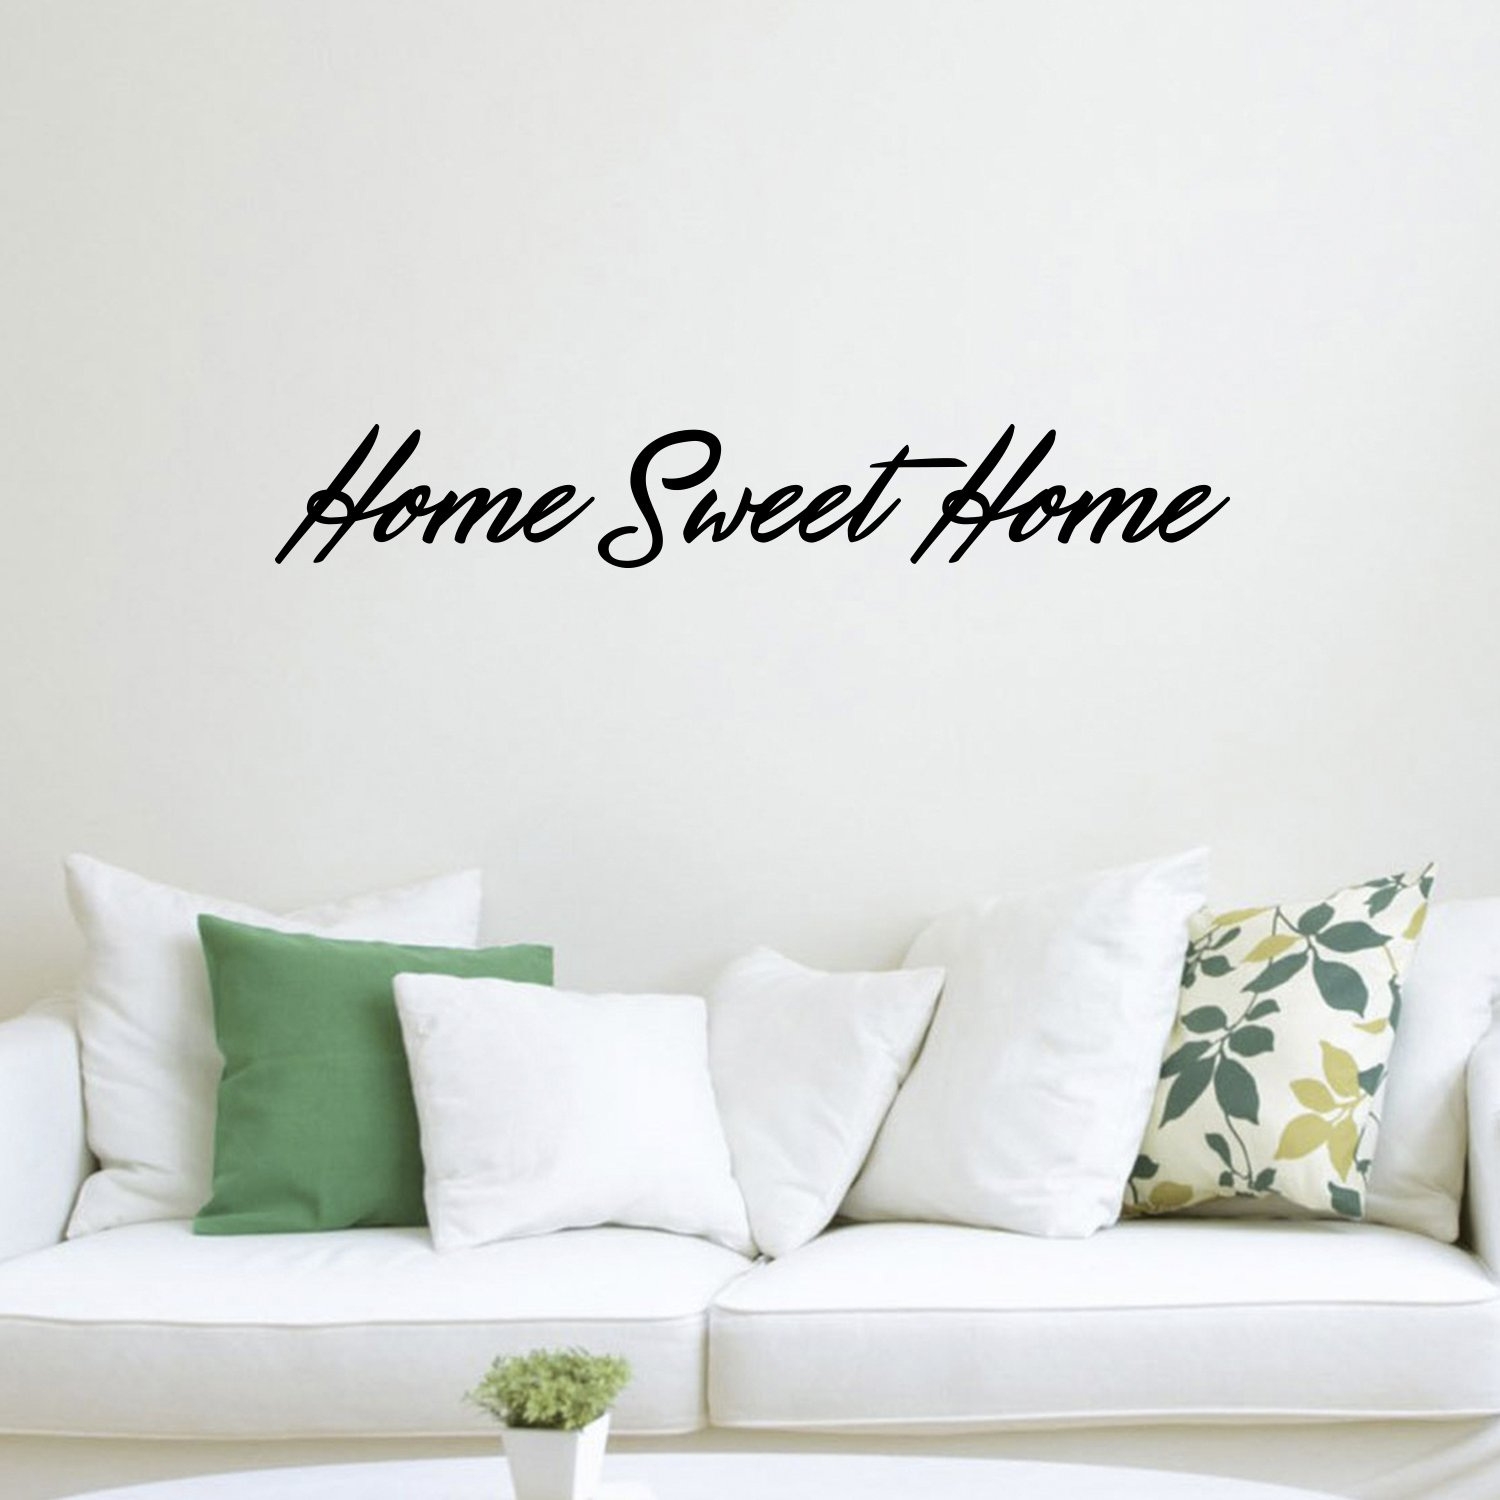 "Home Sweet Home Inspirational Quotes Lettering Decor - Vinyl Wall Art Decal 6"" x 40"" Decoration Vinyl Sticker - Living Room and Kitchen Wall Decals - Greeting Welcome Entrance"